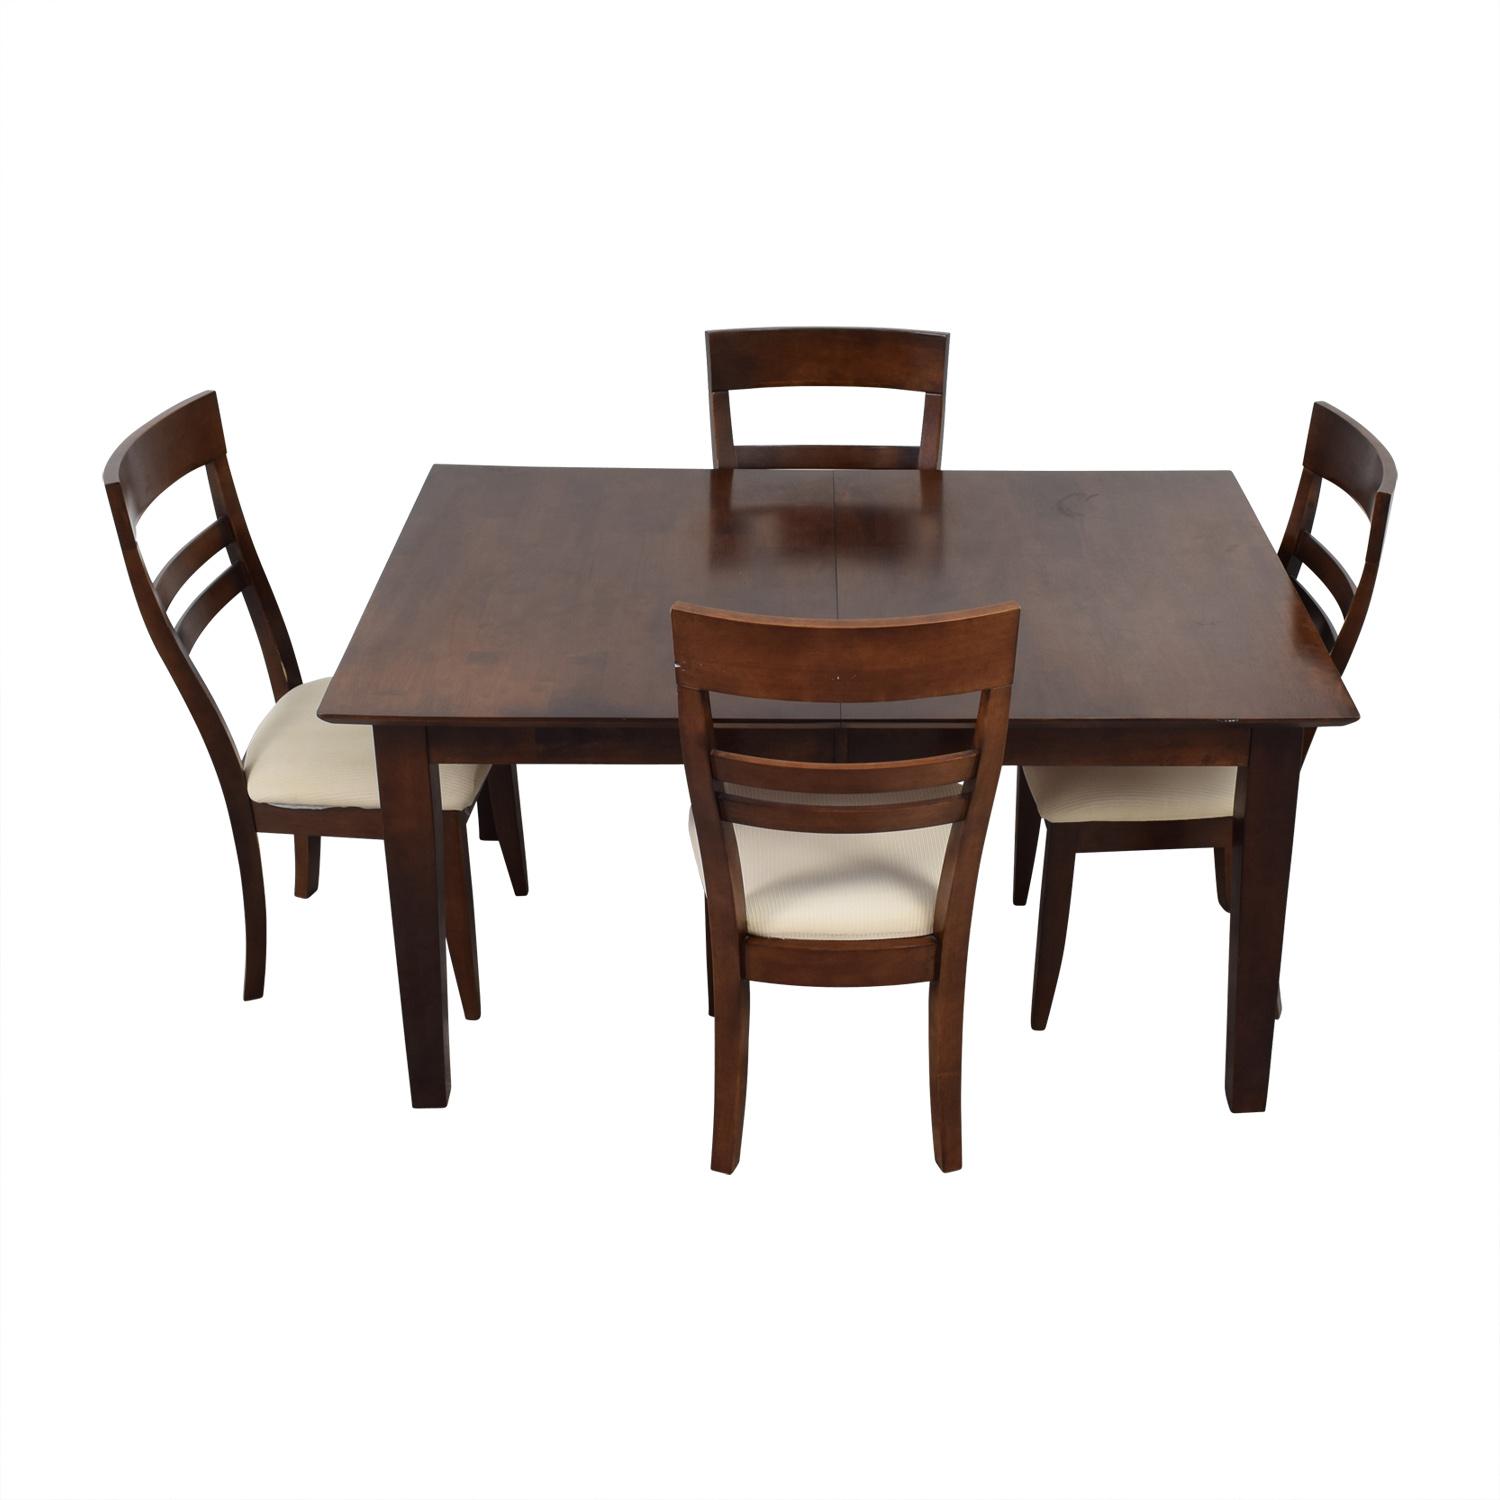 Macys Macys Wood Expandable Dining Table With Chairs Discount